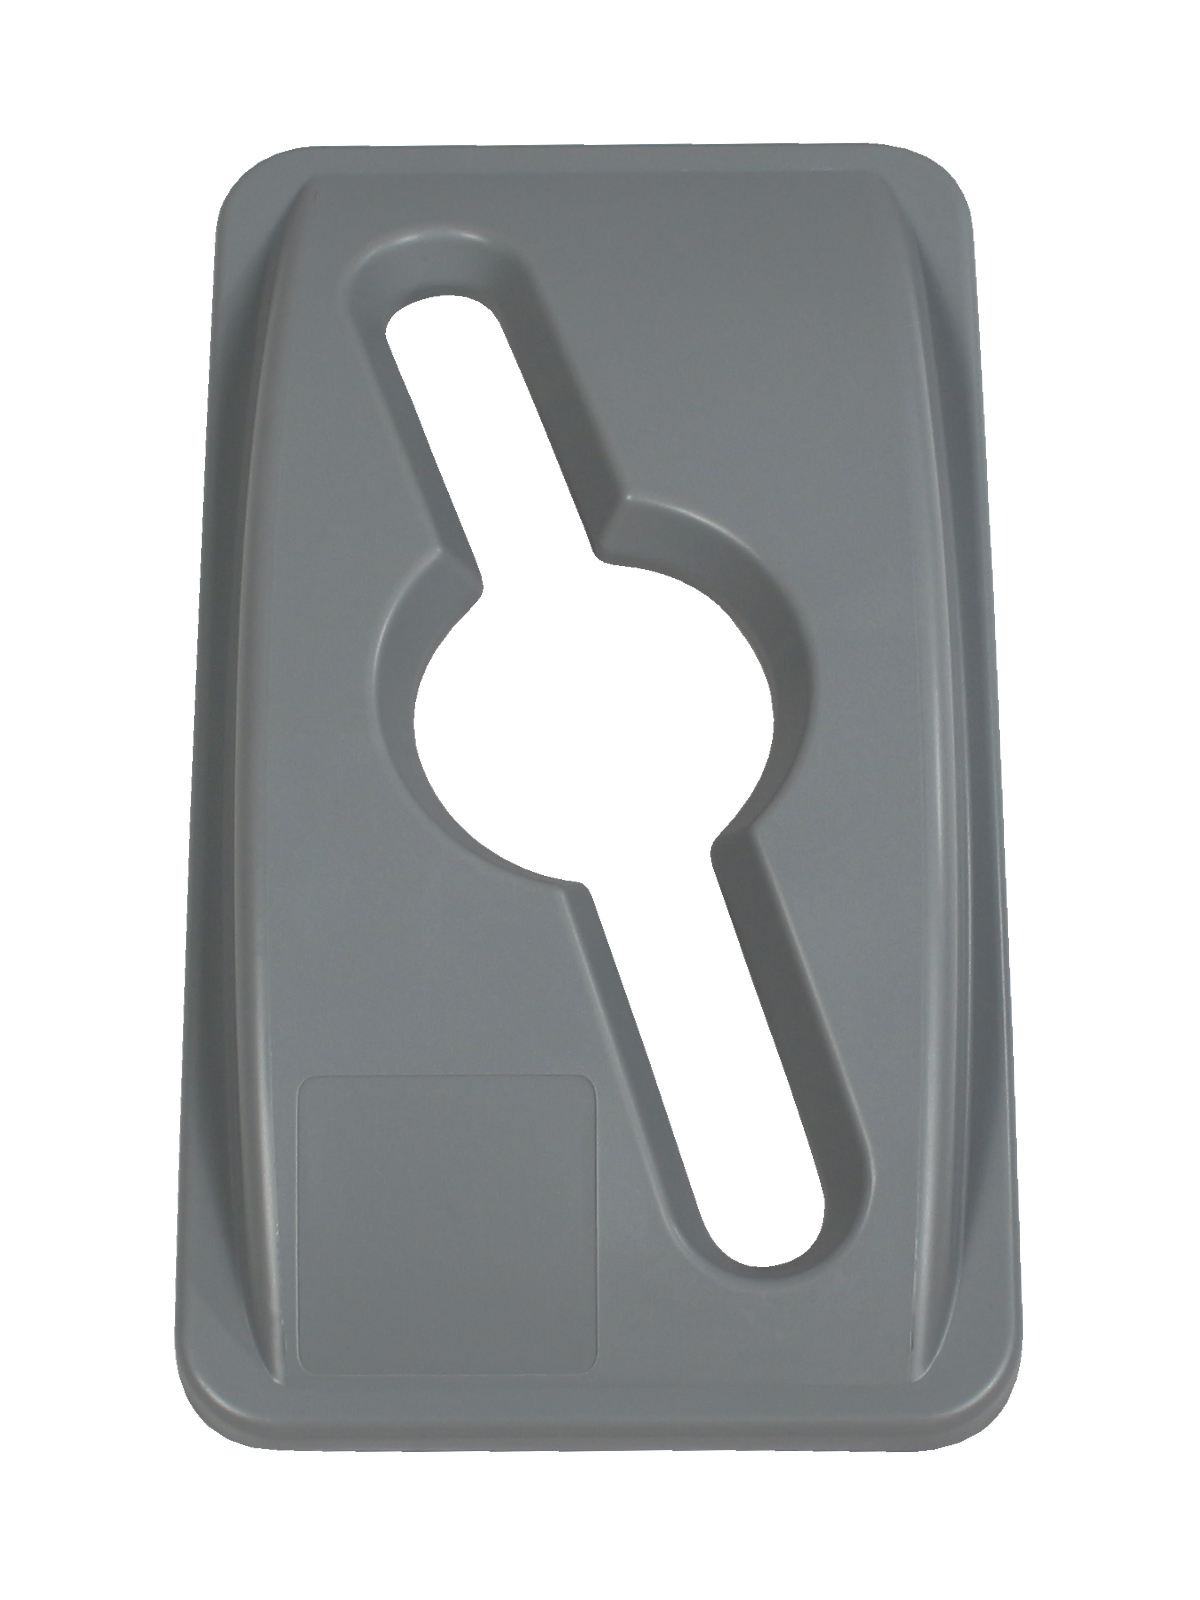 WASTE WATCHER - Single - Lid - Mixed - Executive Grey